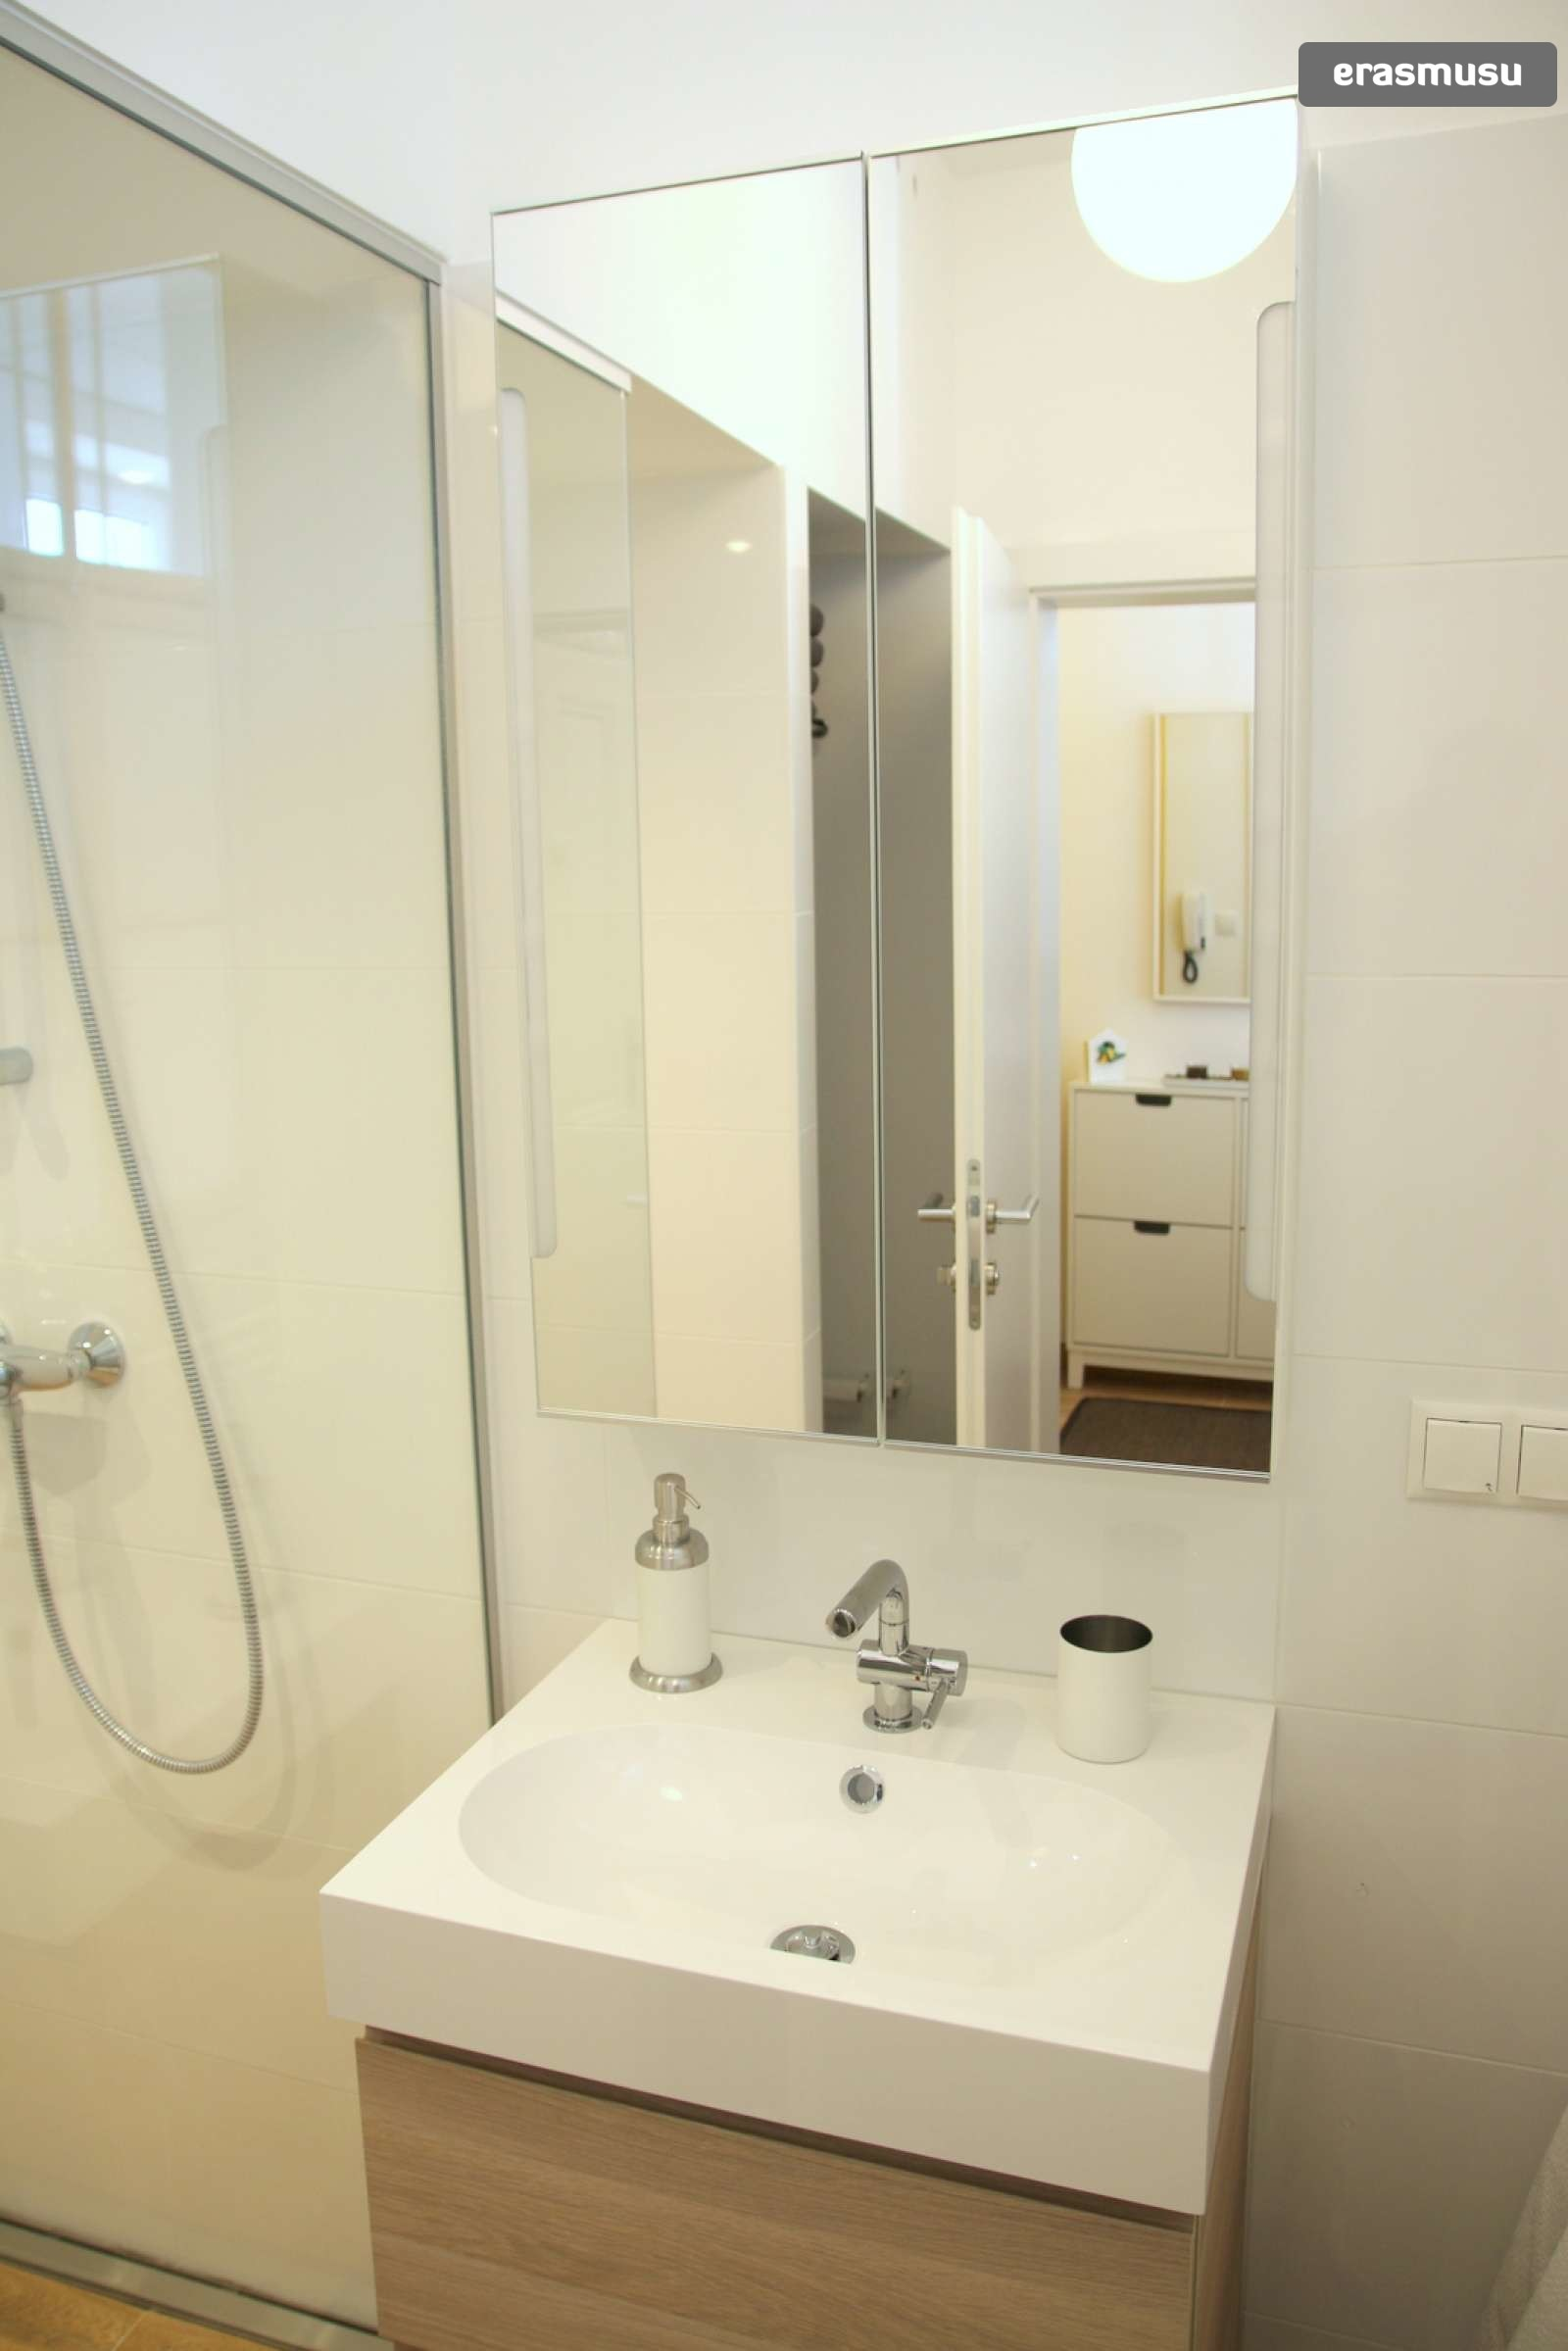 studio-apartment-rent-wahring-83ee28c07f0b127a4fc35e3a1ce66ce1